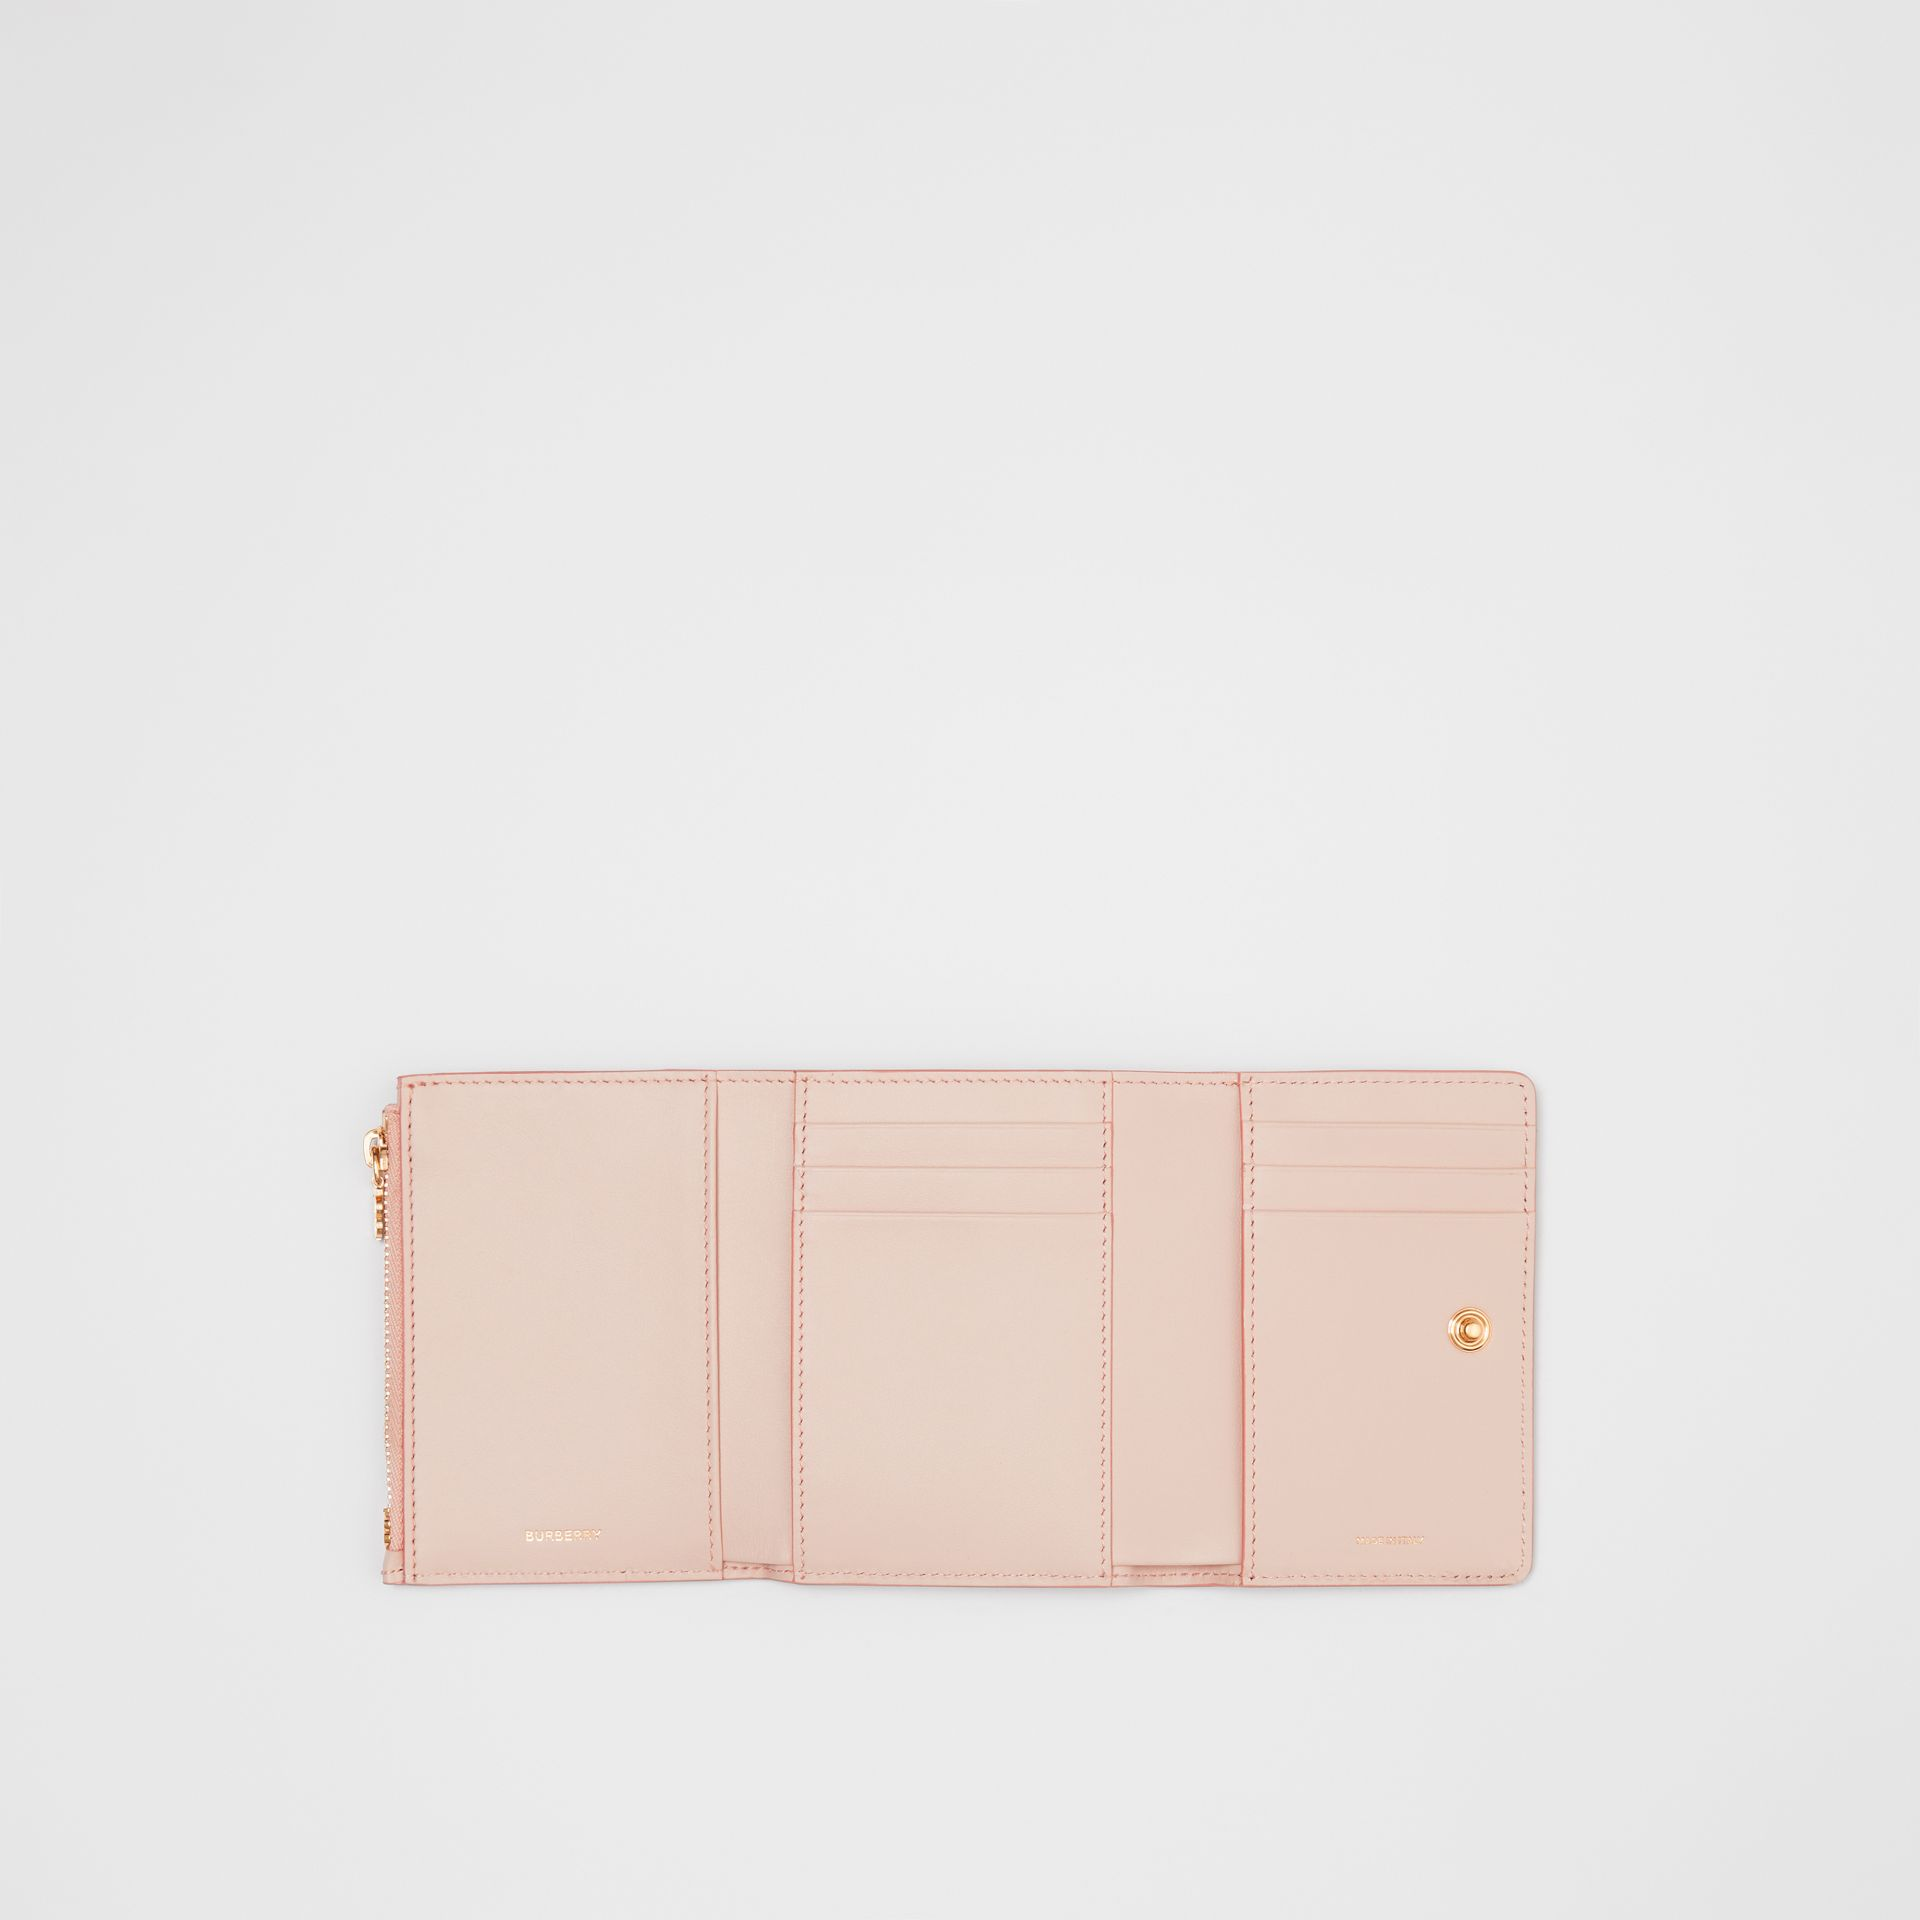 Small Monogram Leather Folding Wallet in Rose Beige - Women | Burberry - gallery image 2